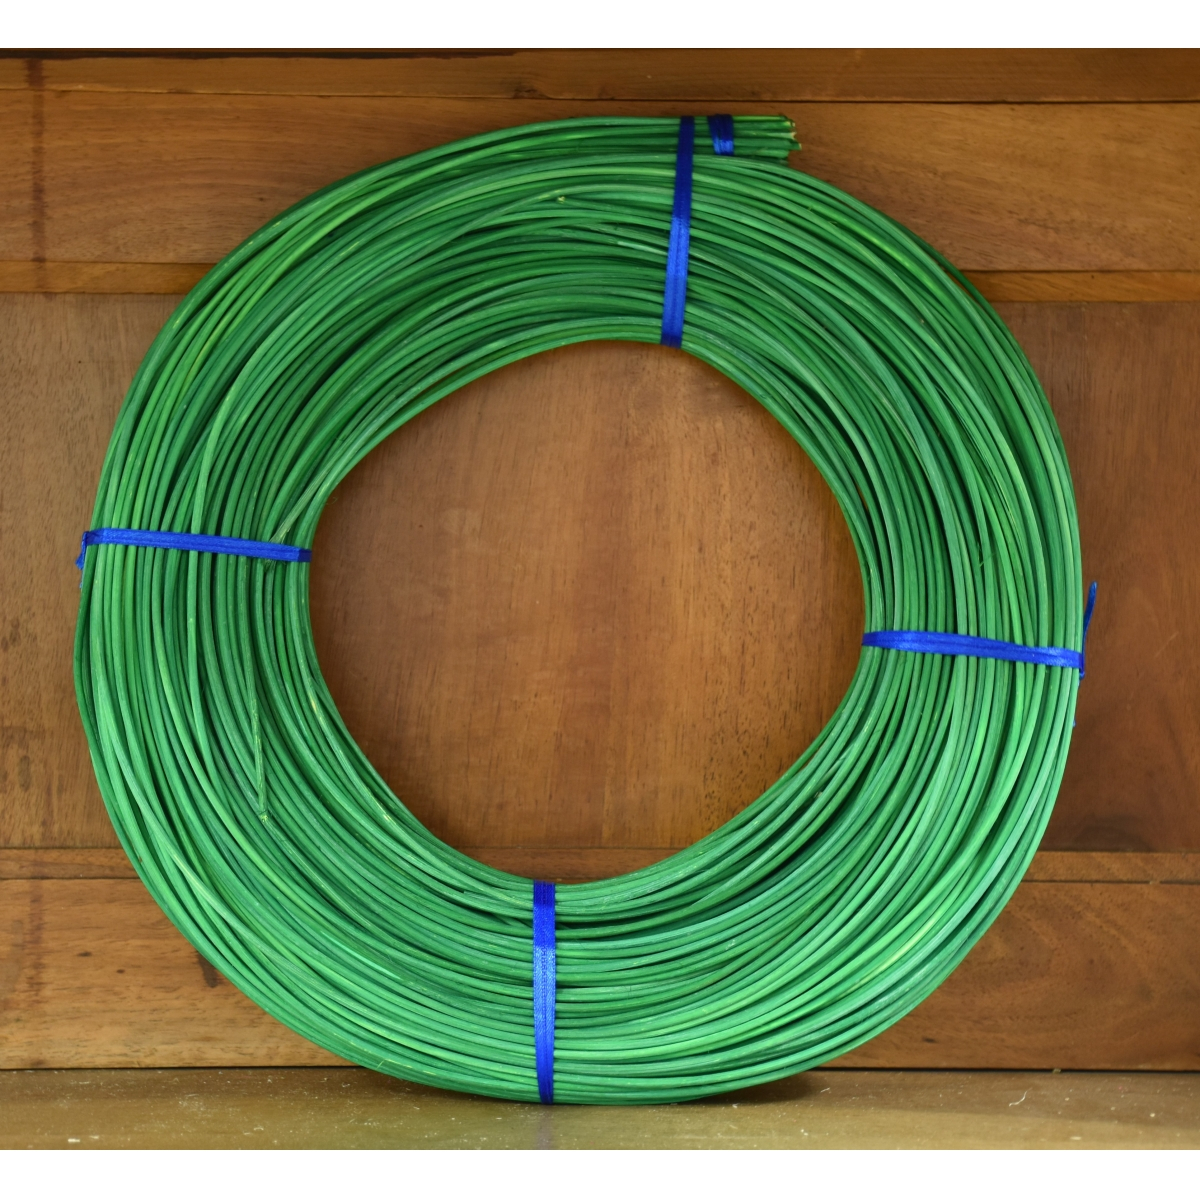 Basketry - Light green Rattan core Viet 2/4 mm in coil 250 g - The ...